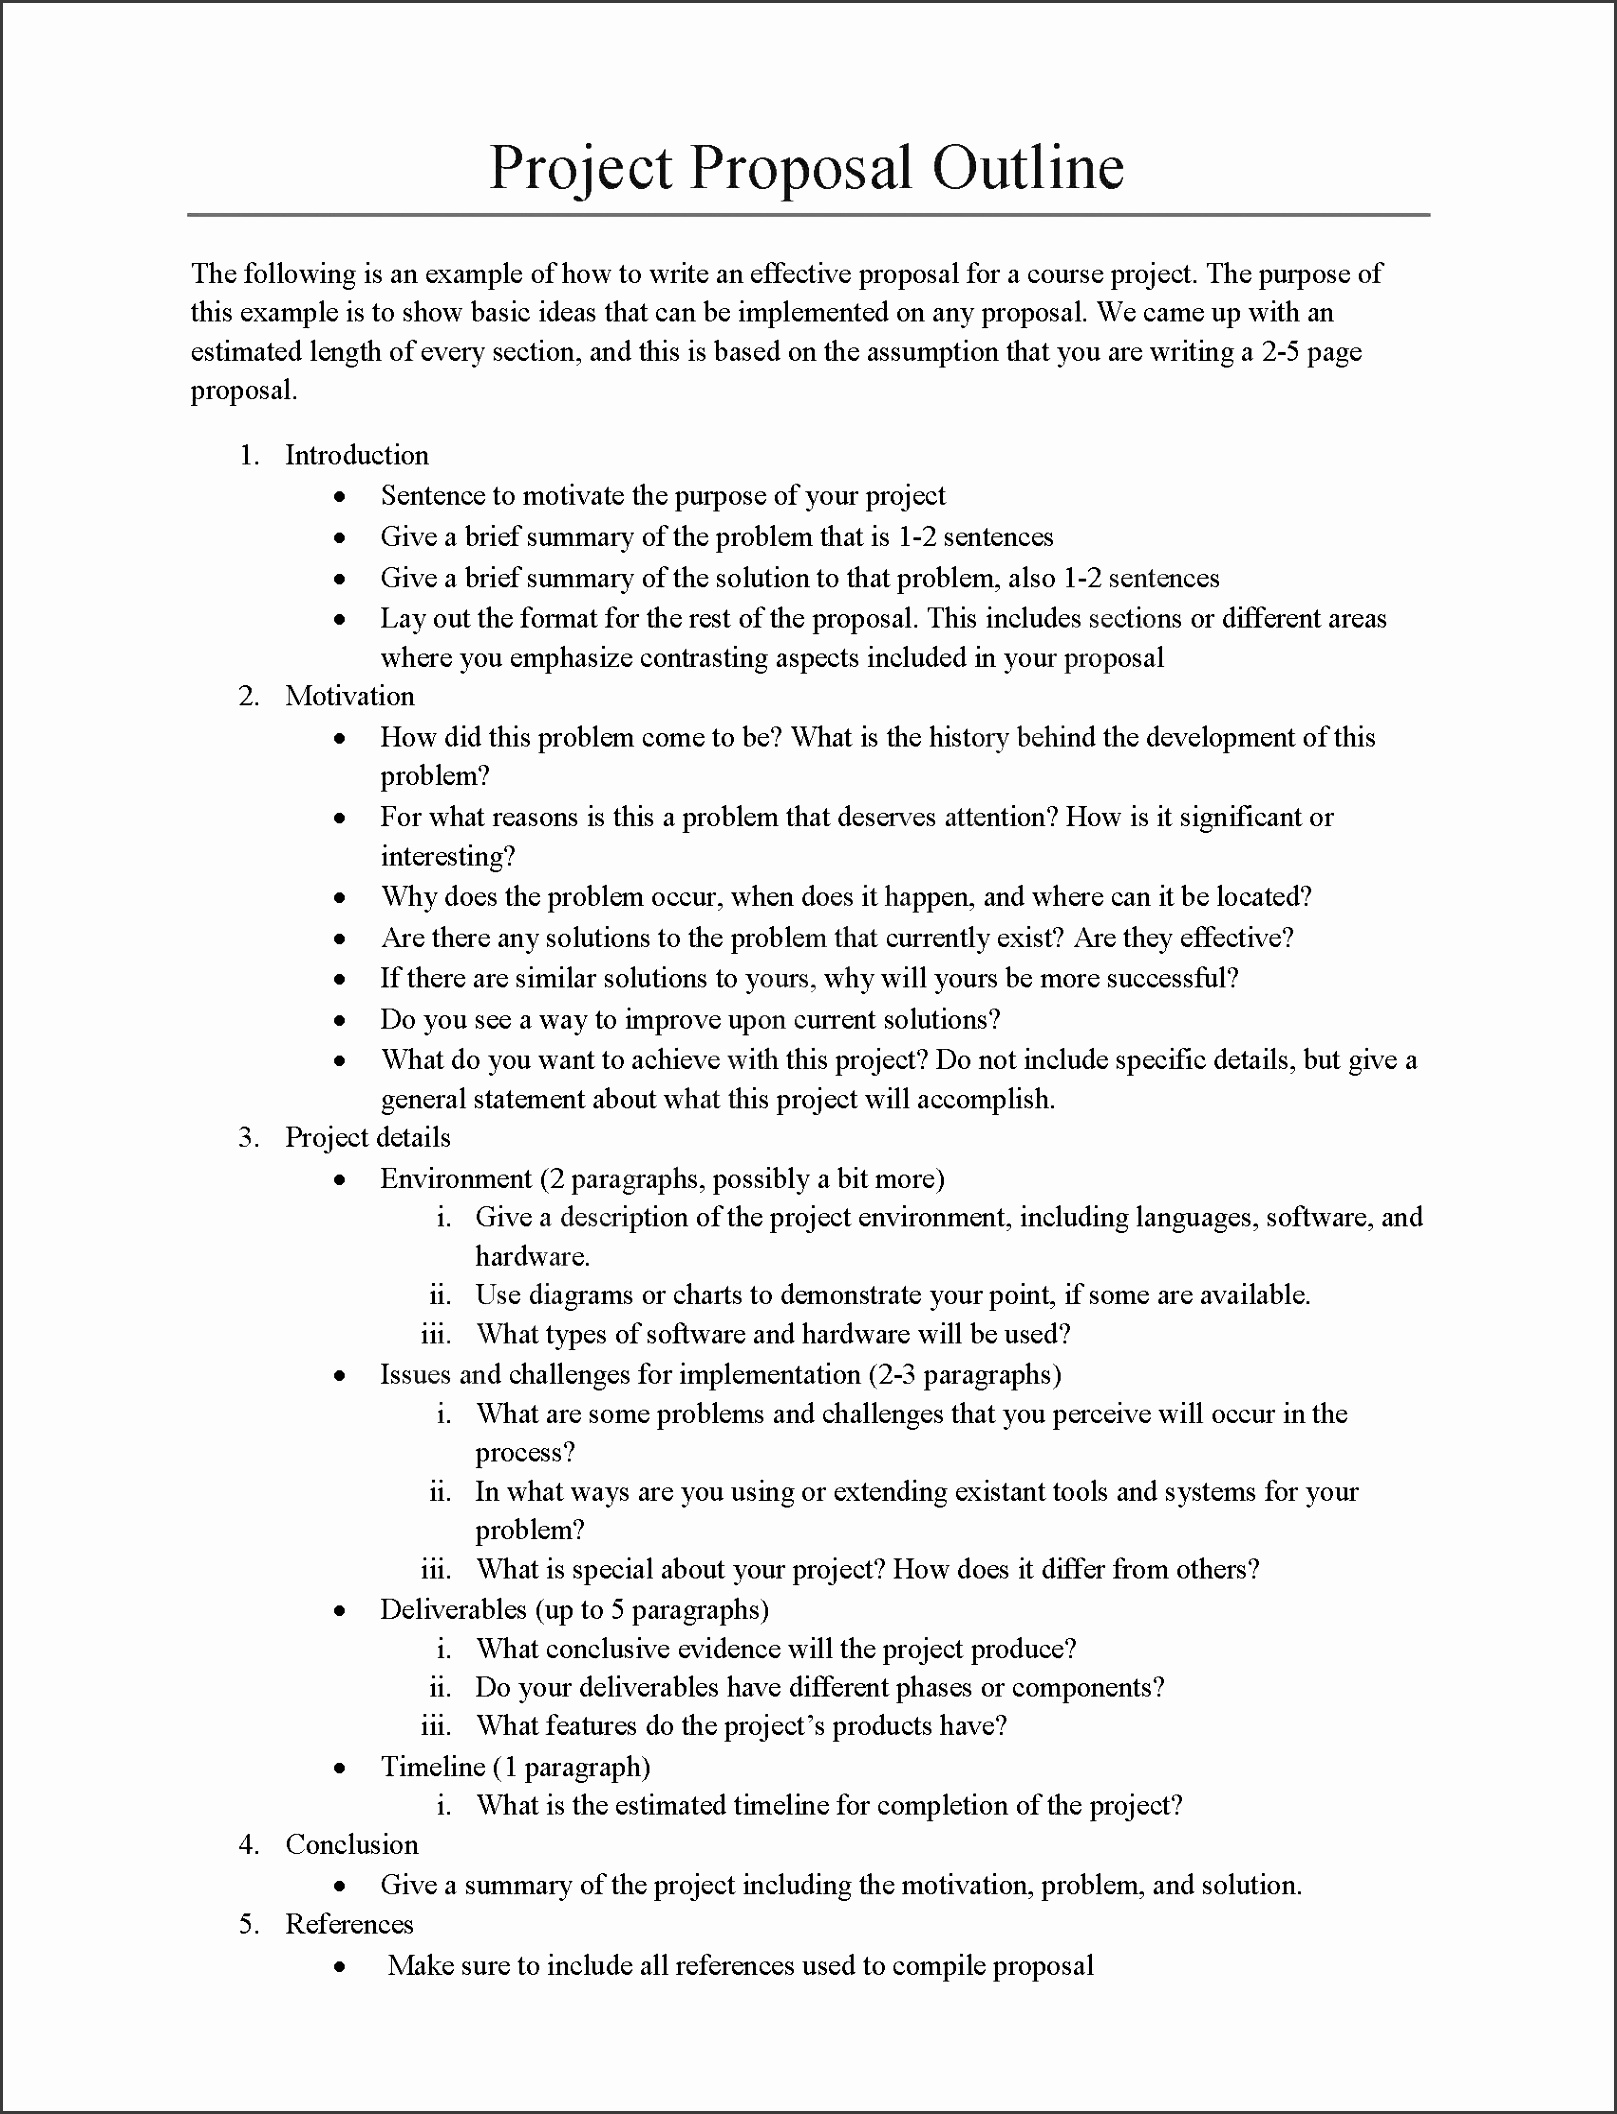 puter science dissertation format Write My Paper Here Best College Paper Writing Service on the